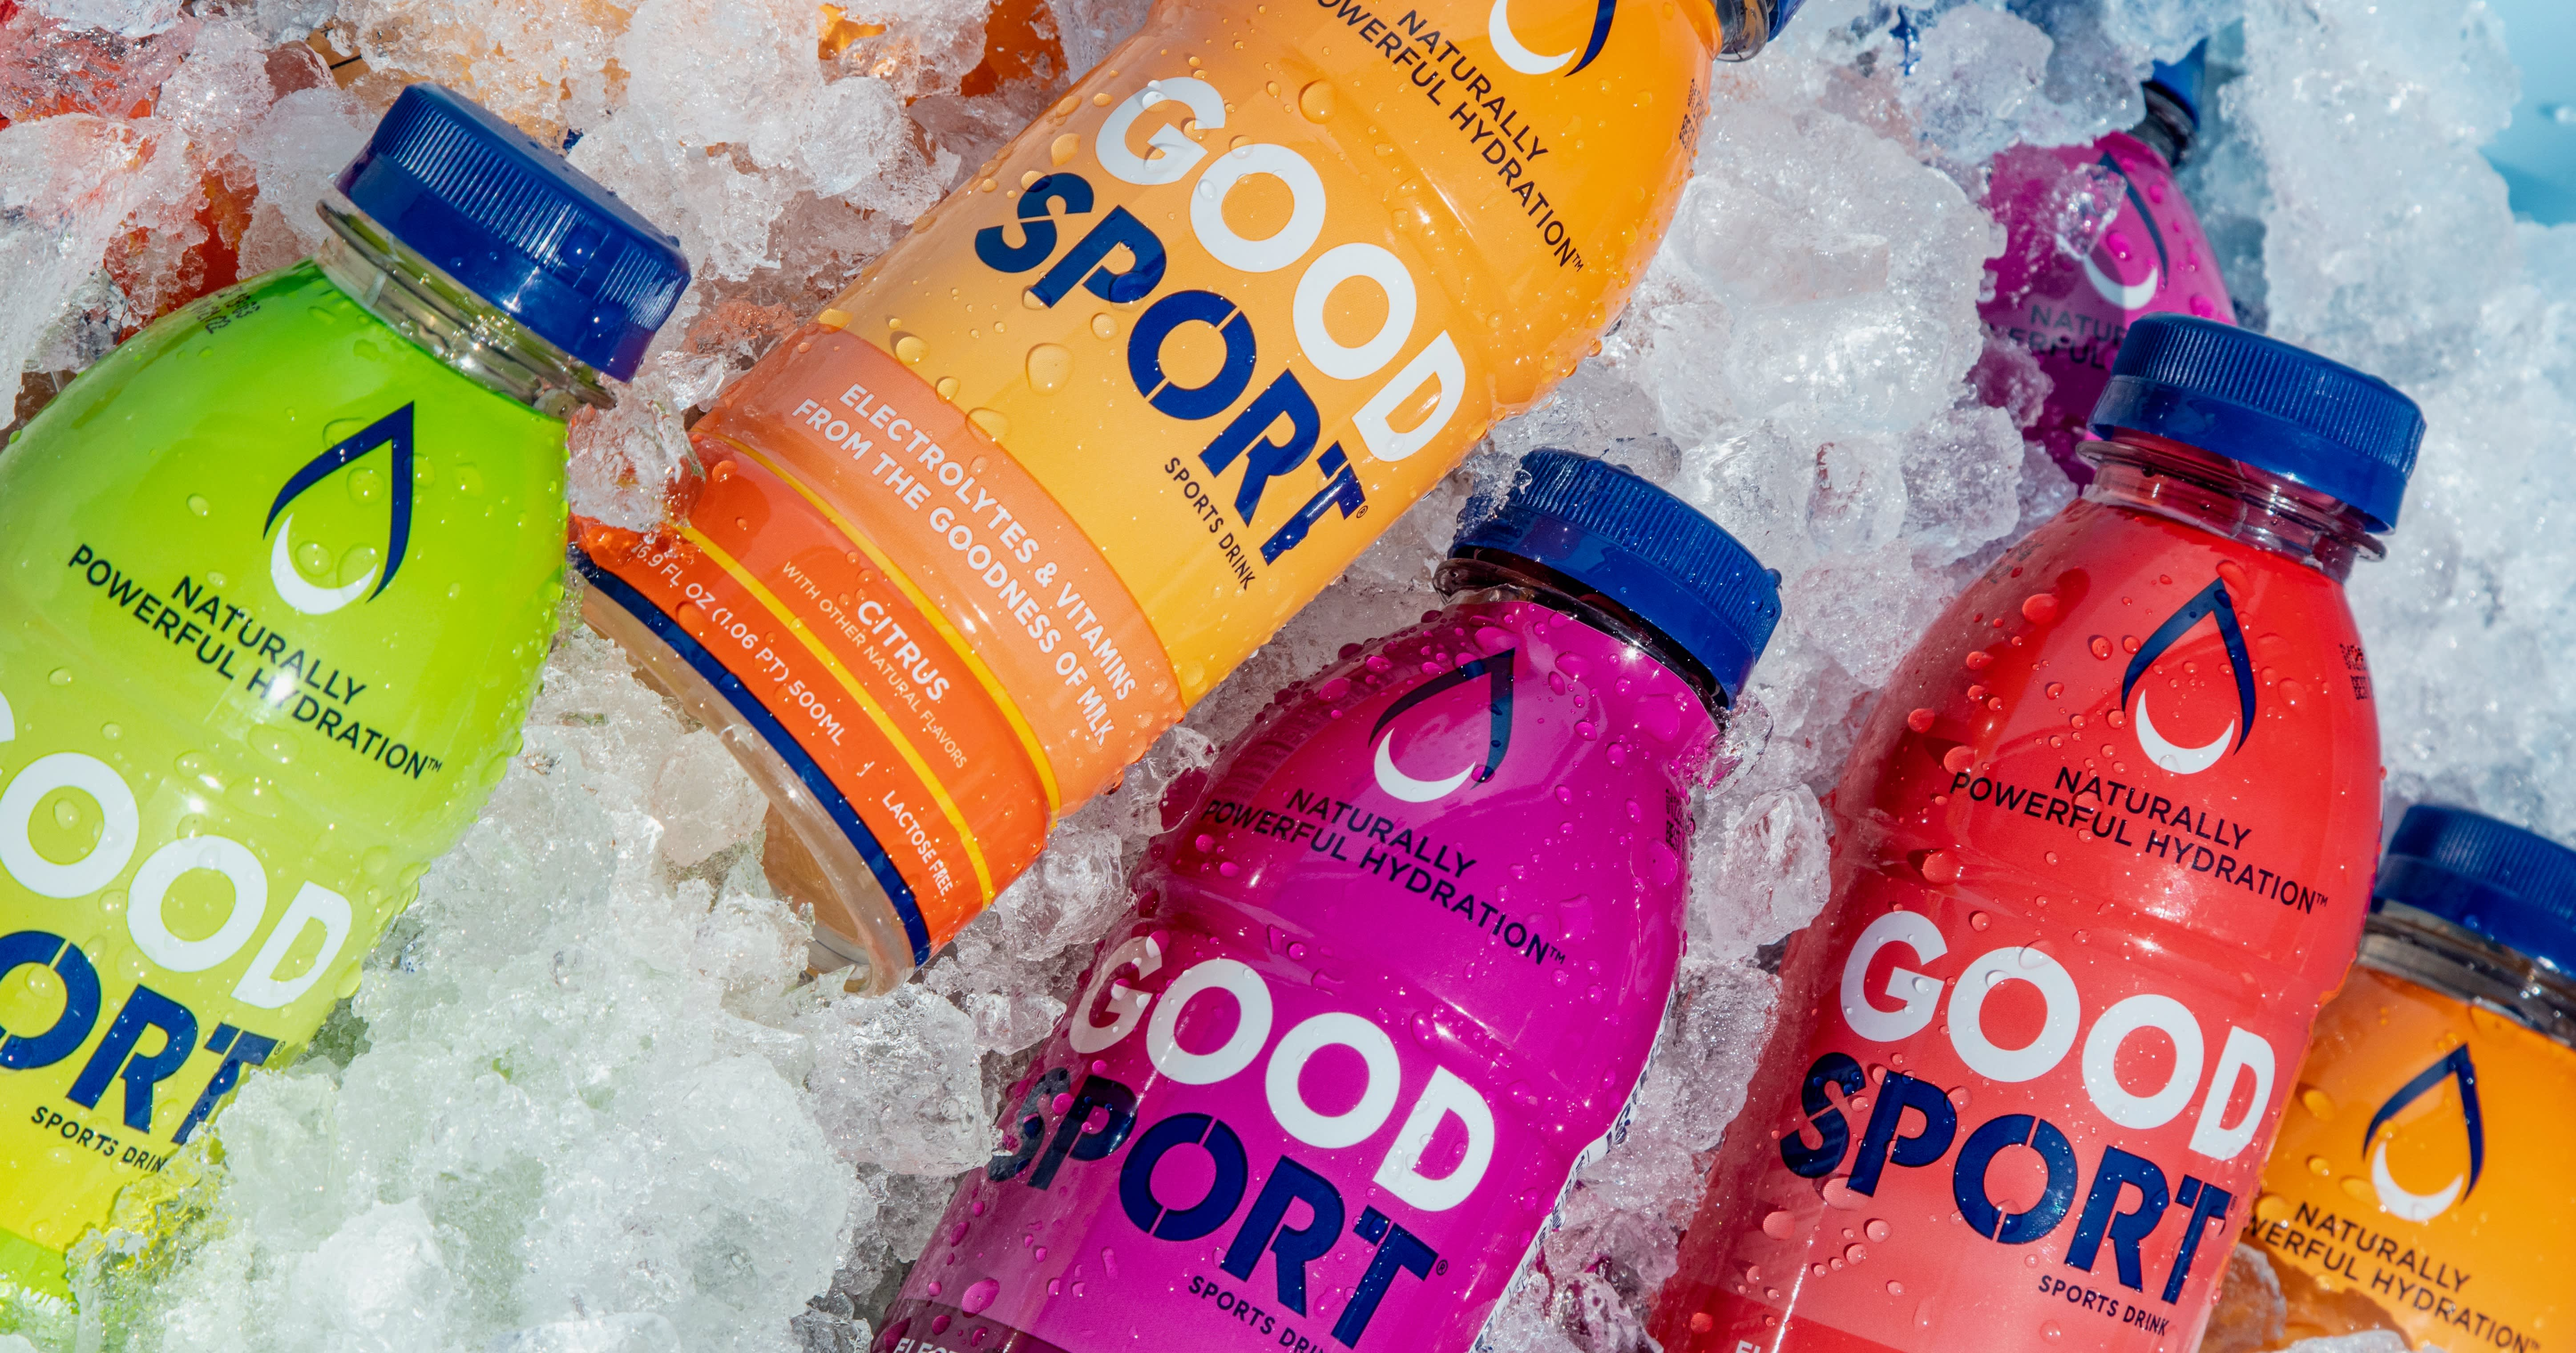 Here's the story behind GoodSport's milk-based sports drink, which started as a secret between a mother and her son